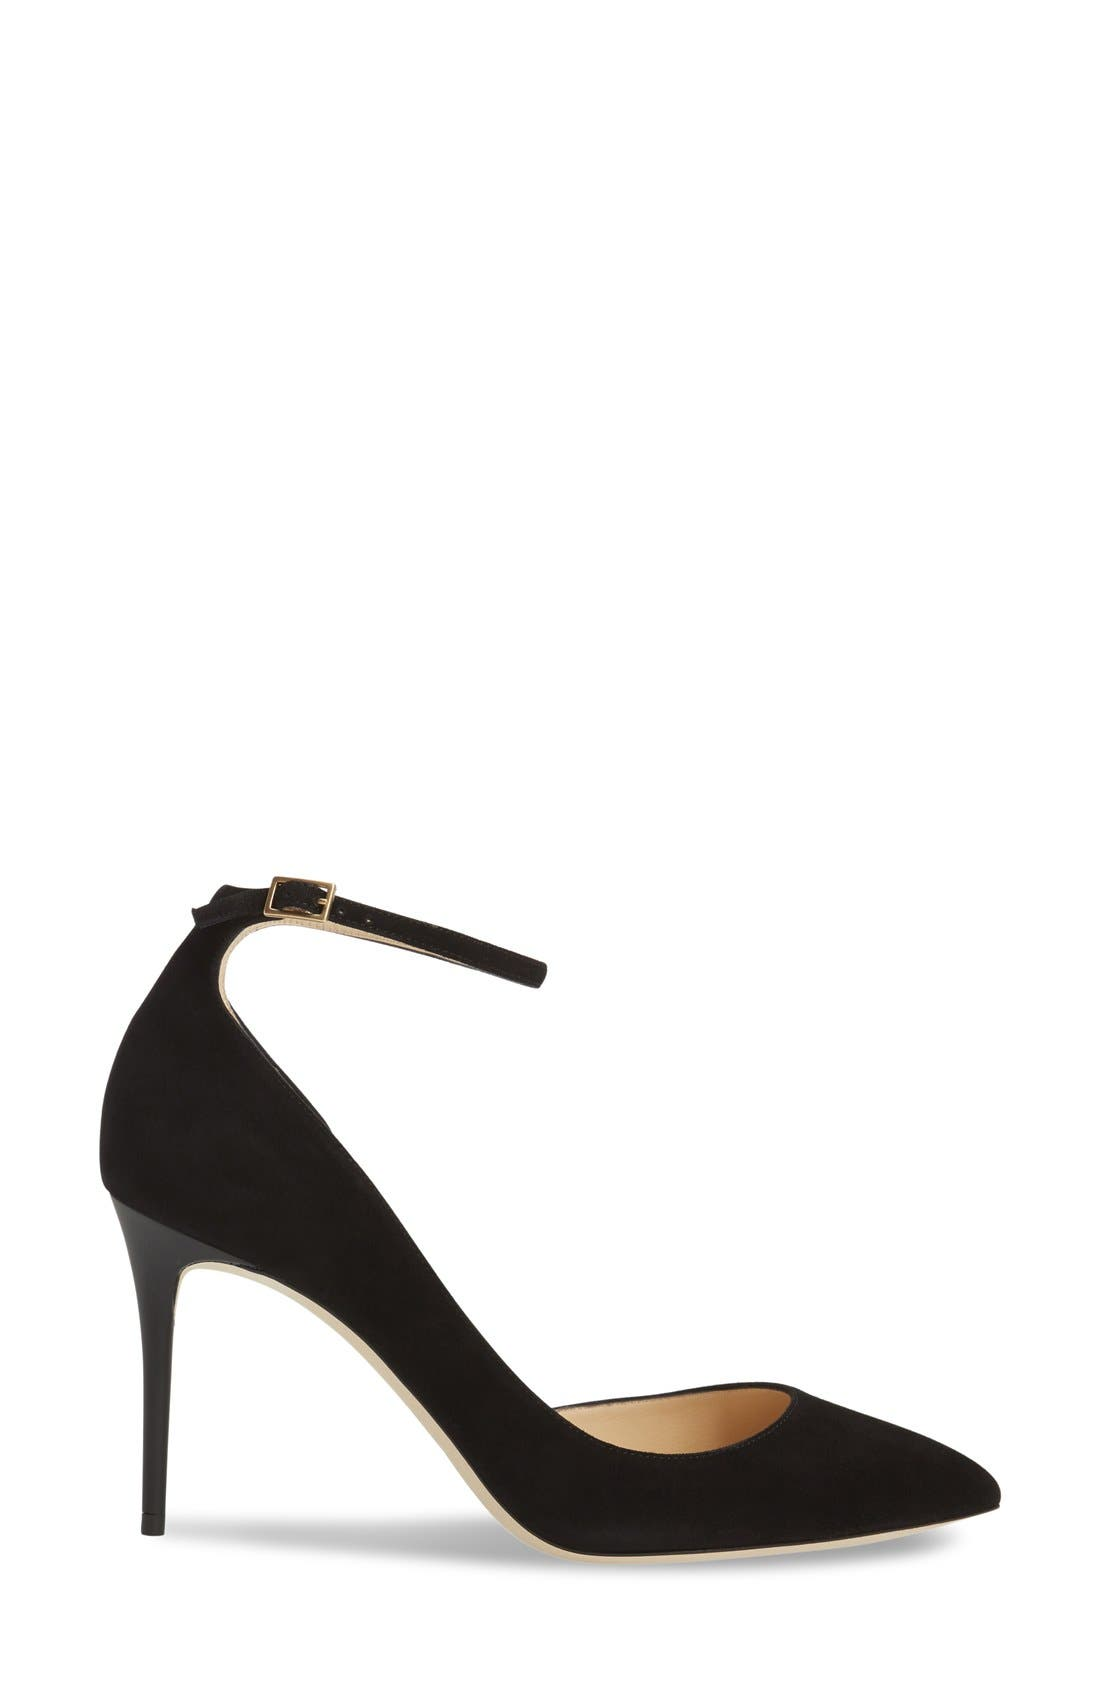 'Lucy' Half d'Orsay Pointy Toe Pump,                             Alternate thumbnail 18, color,